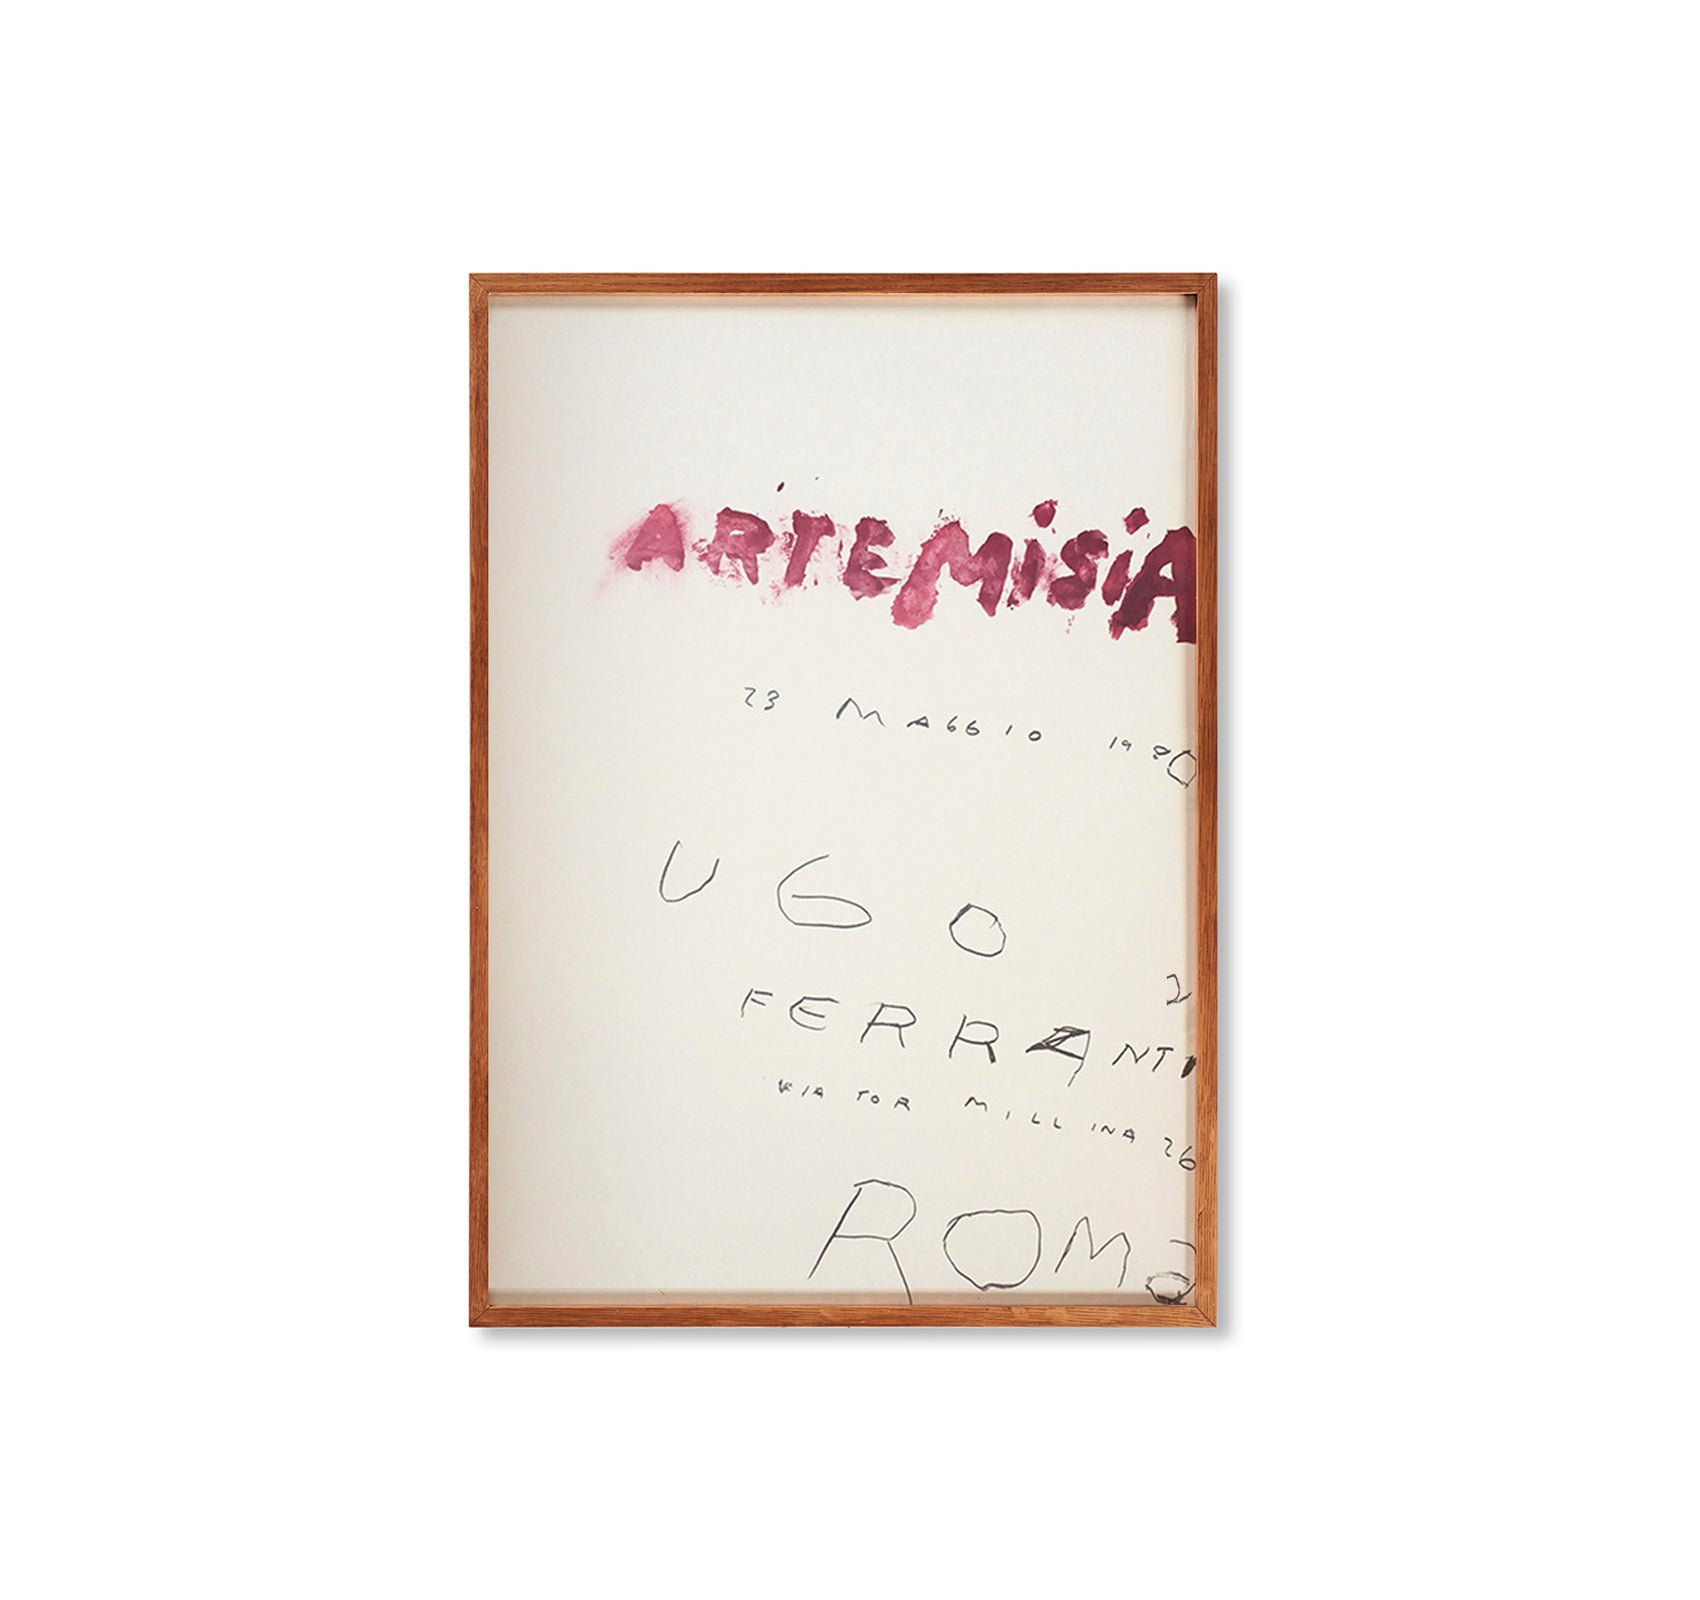 ARTEMISIA PRINT (1980) by Cy Twombly